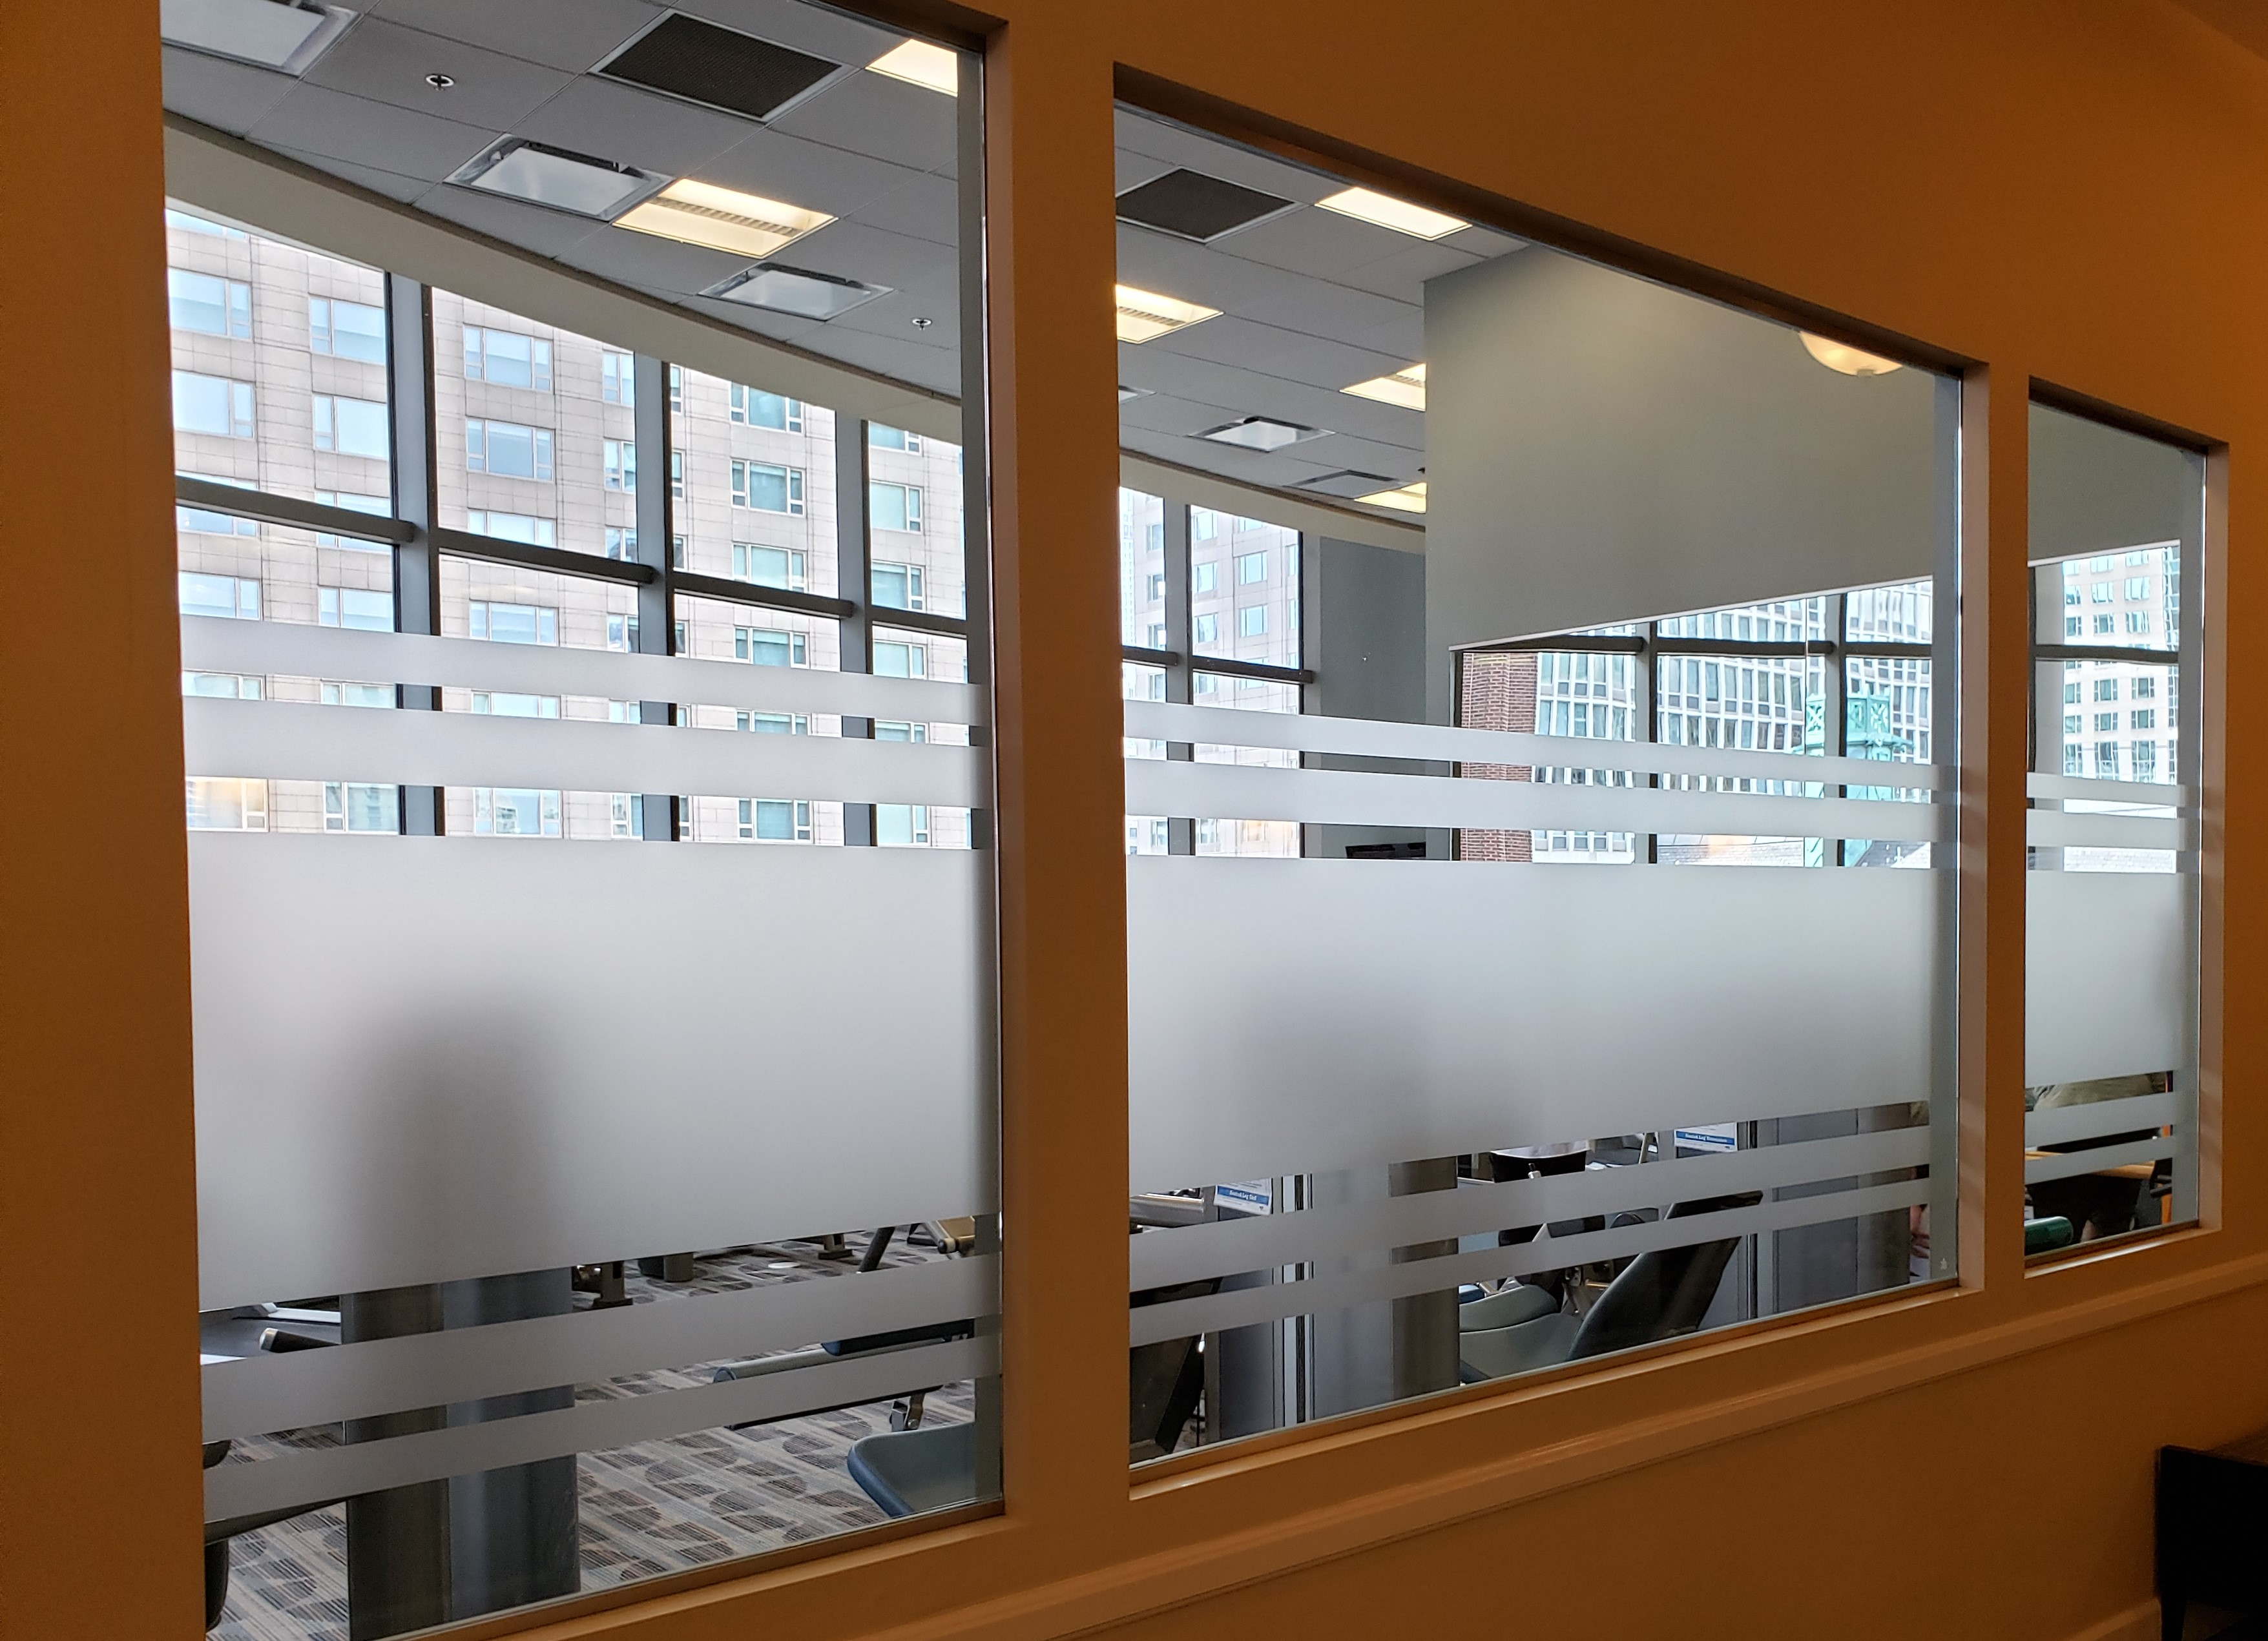 Frosted window graphics on conference room window